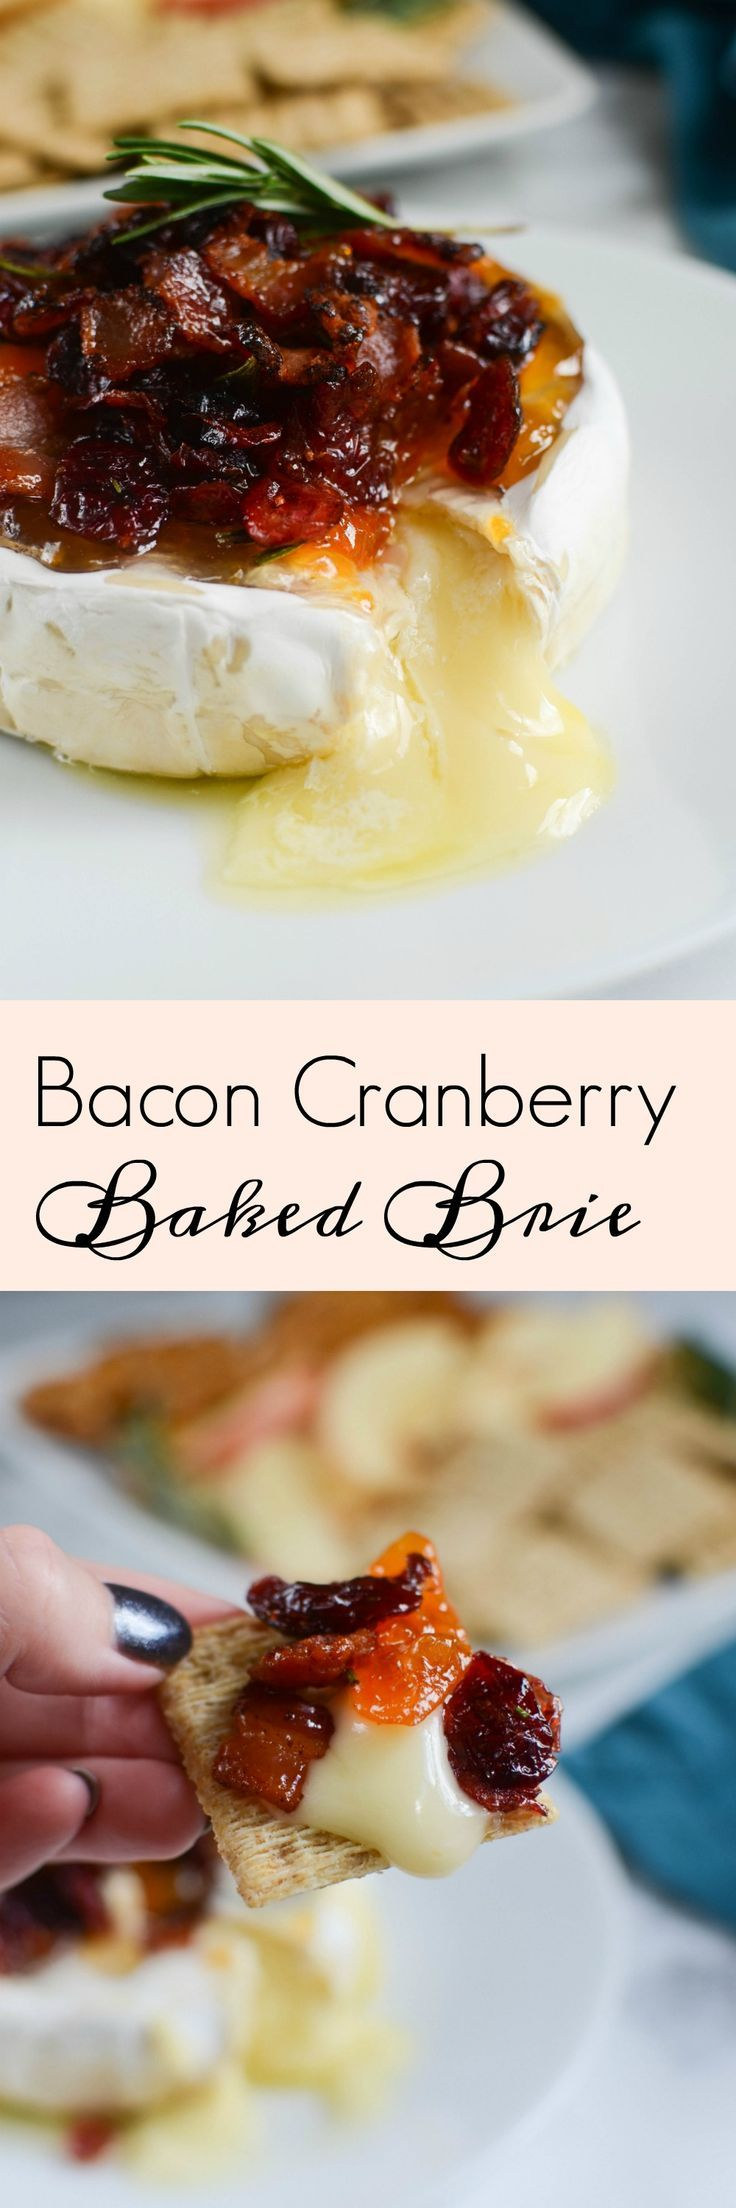 Bacon Cranberry Baked Brie - the perfect holiday appetizer! The sweet and salty combo is so delicious! #AD #MakeHolidaysHappen #ILikeALDI